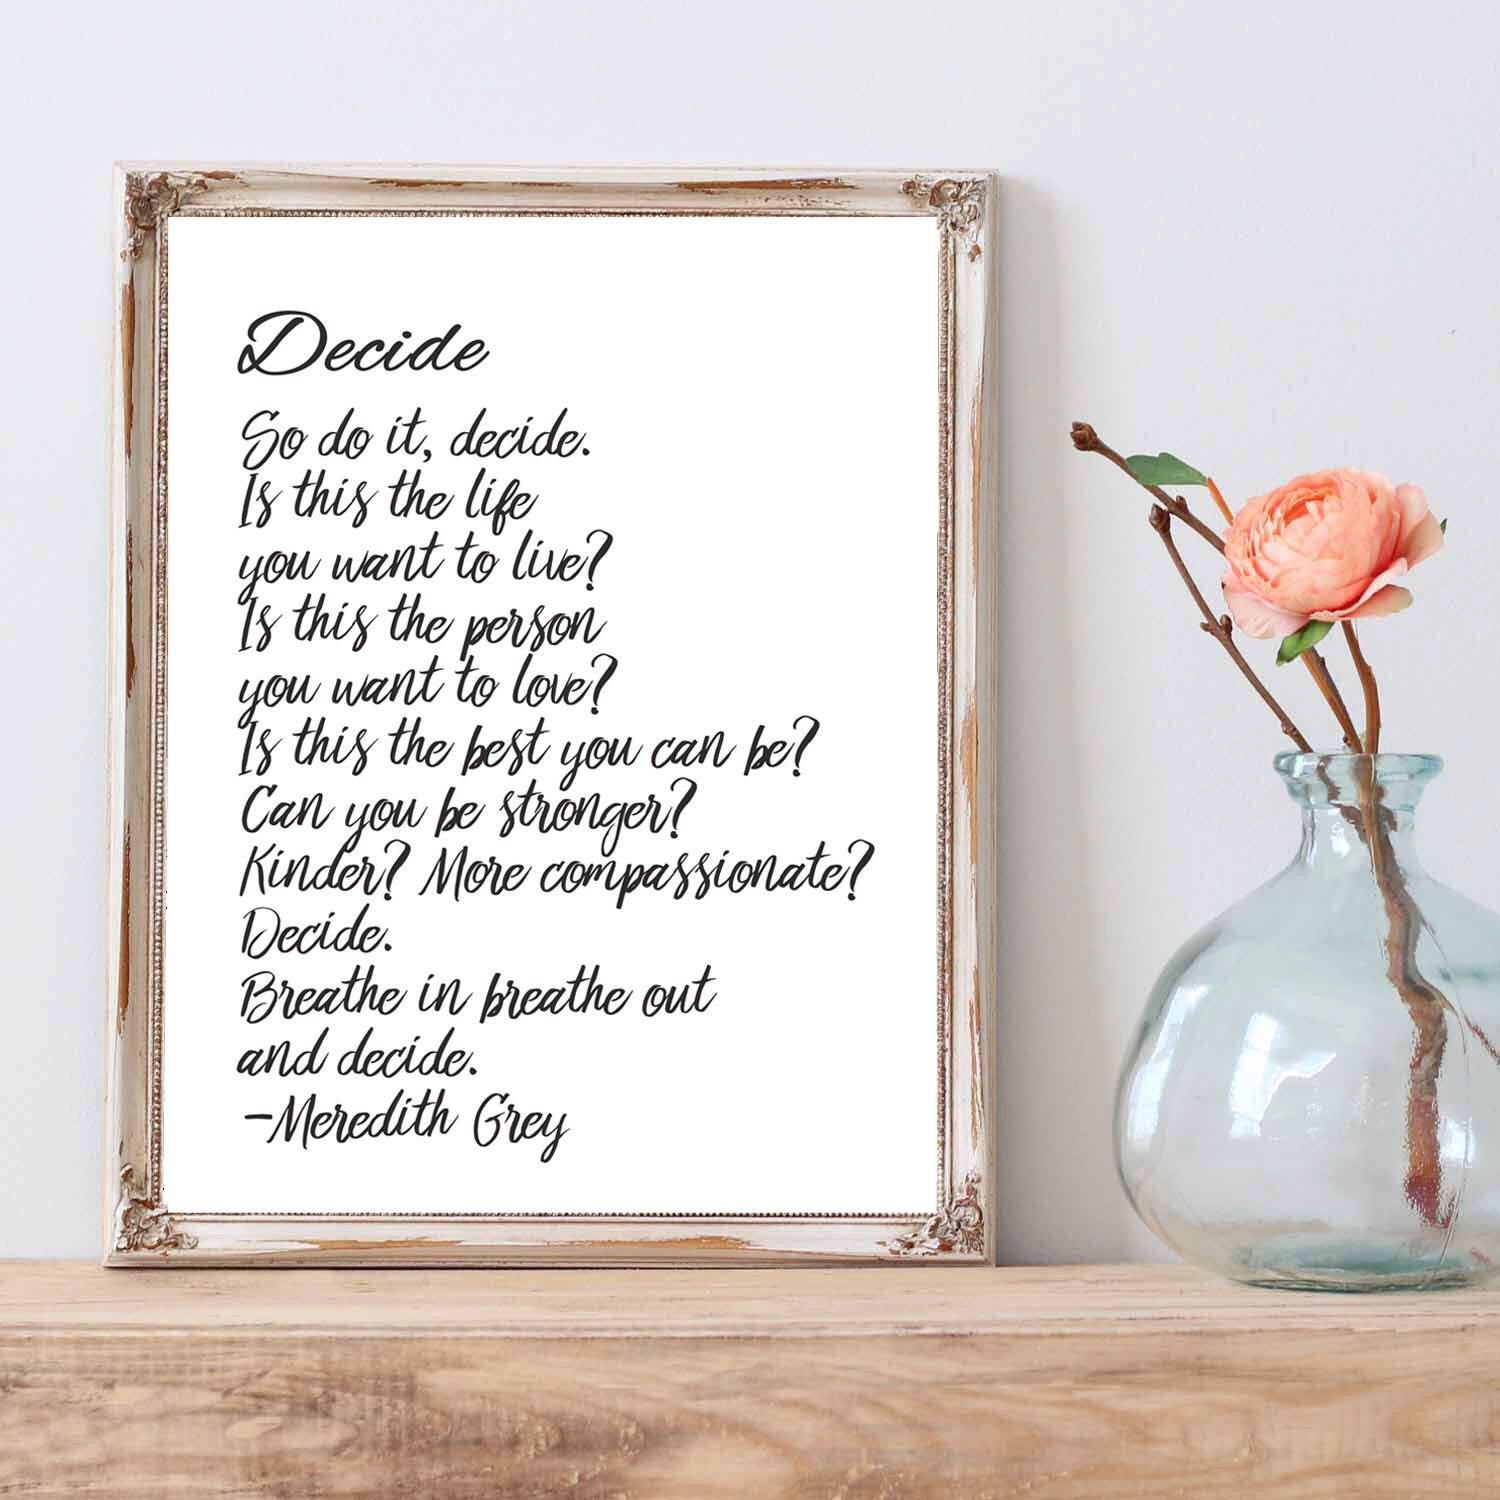 Greyu0027s Anatomy Quote, Decide Quote By Meredith Grey   Greys Anatomy   Wall  Art, Motivational Hang Up And Frame, Inspirational